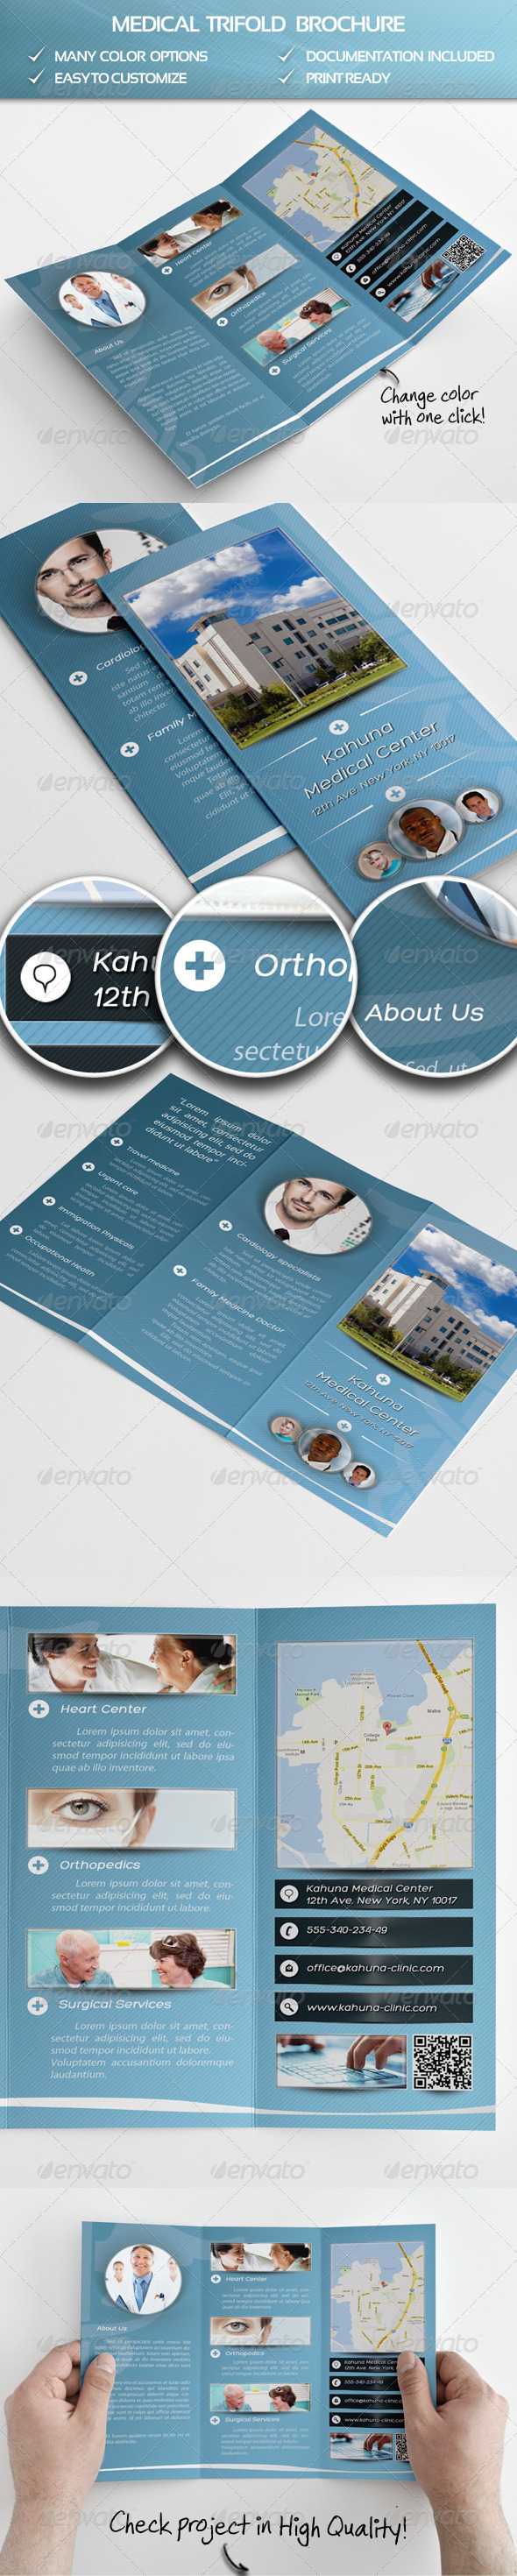 Medical Trifold Brochure - Informational Brochures